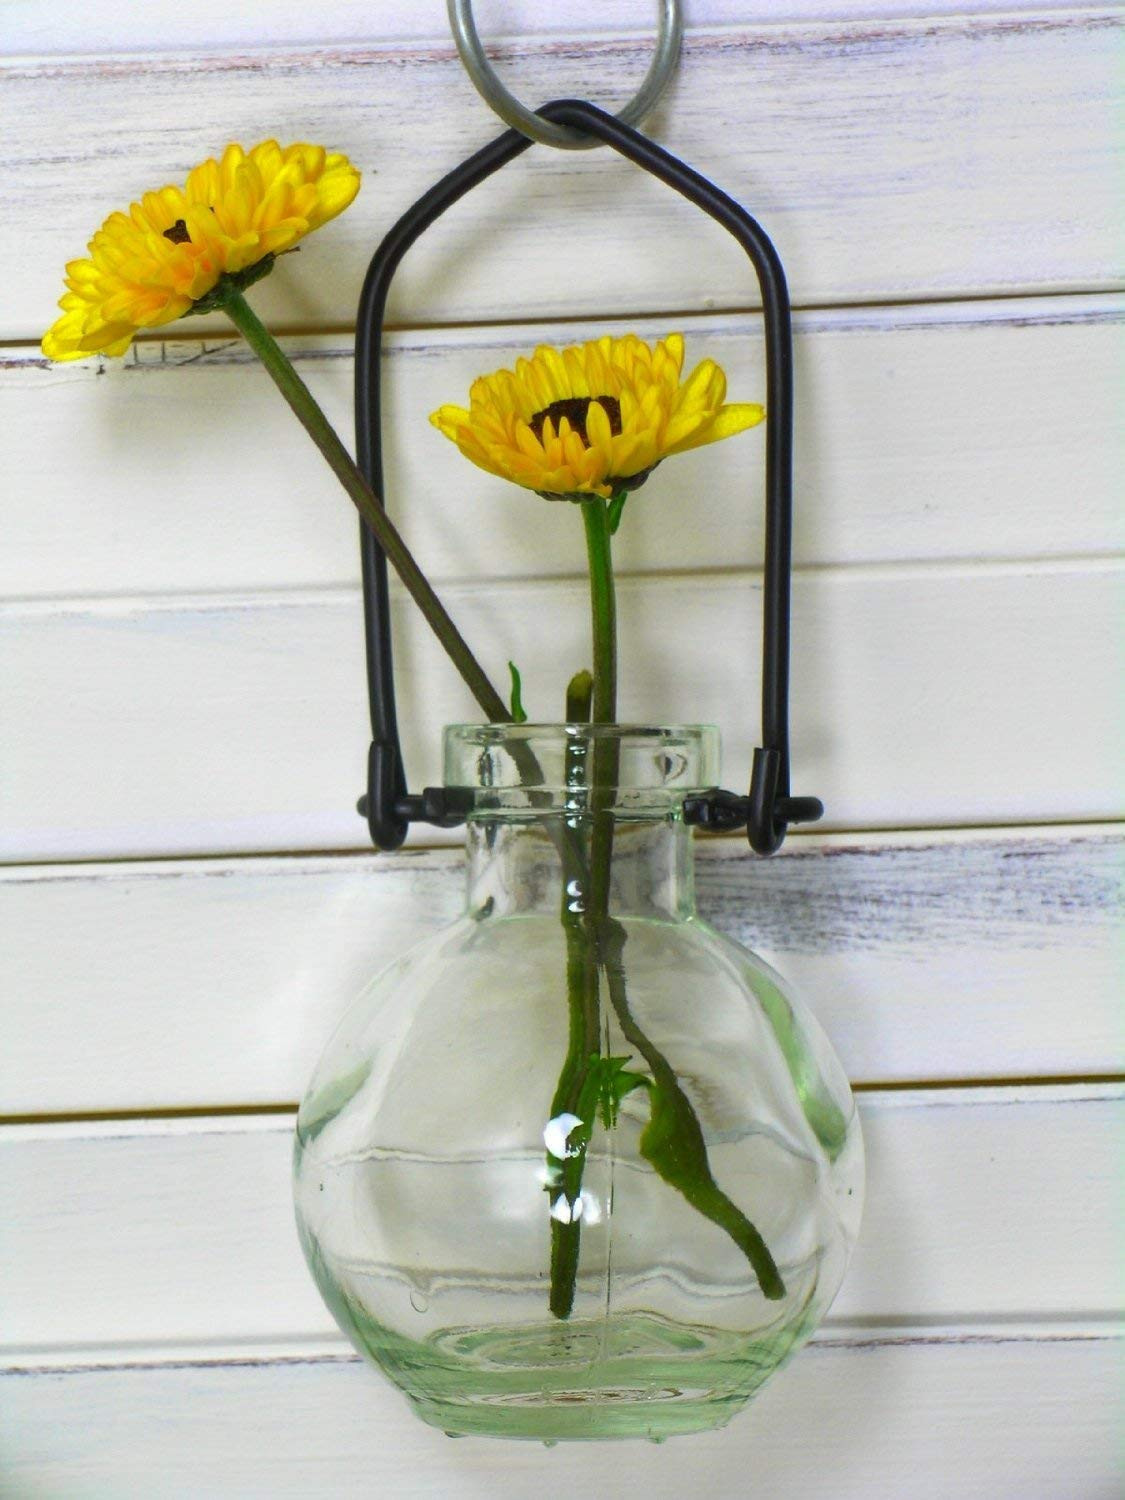 36 inch clear glass vase of amazon com hanging flowers colored glass vase g70 clear 1 pc throughout amazon com hanging flowers colored glass vase g70 clear 1 pc colored glass bottle floral vase colored vase bud vase wall vase garden vase